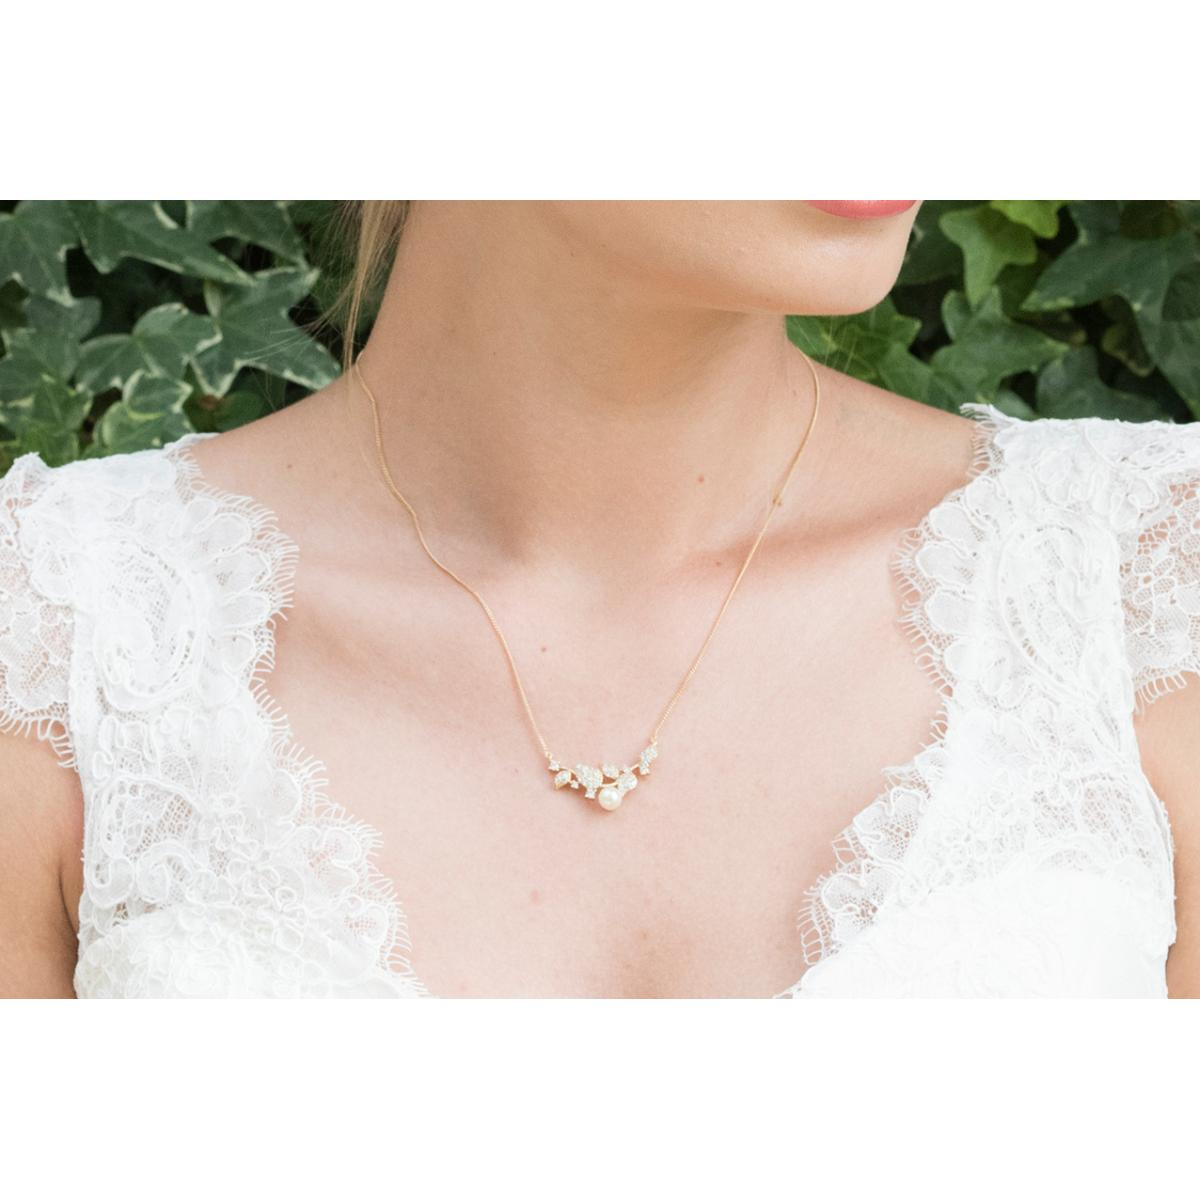 Ivory and Co Aphrodite Gold Pendant